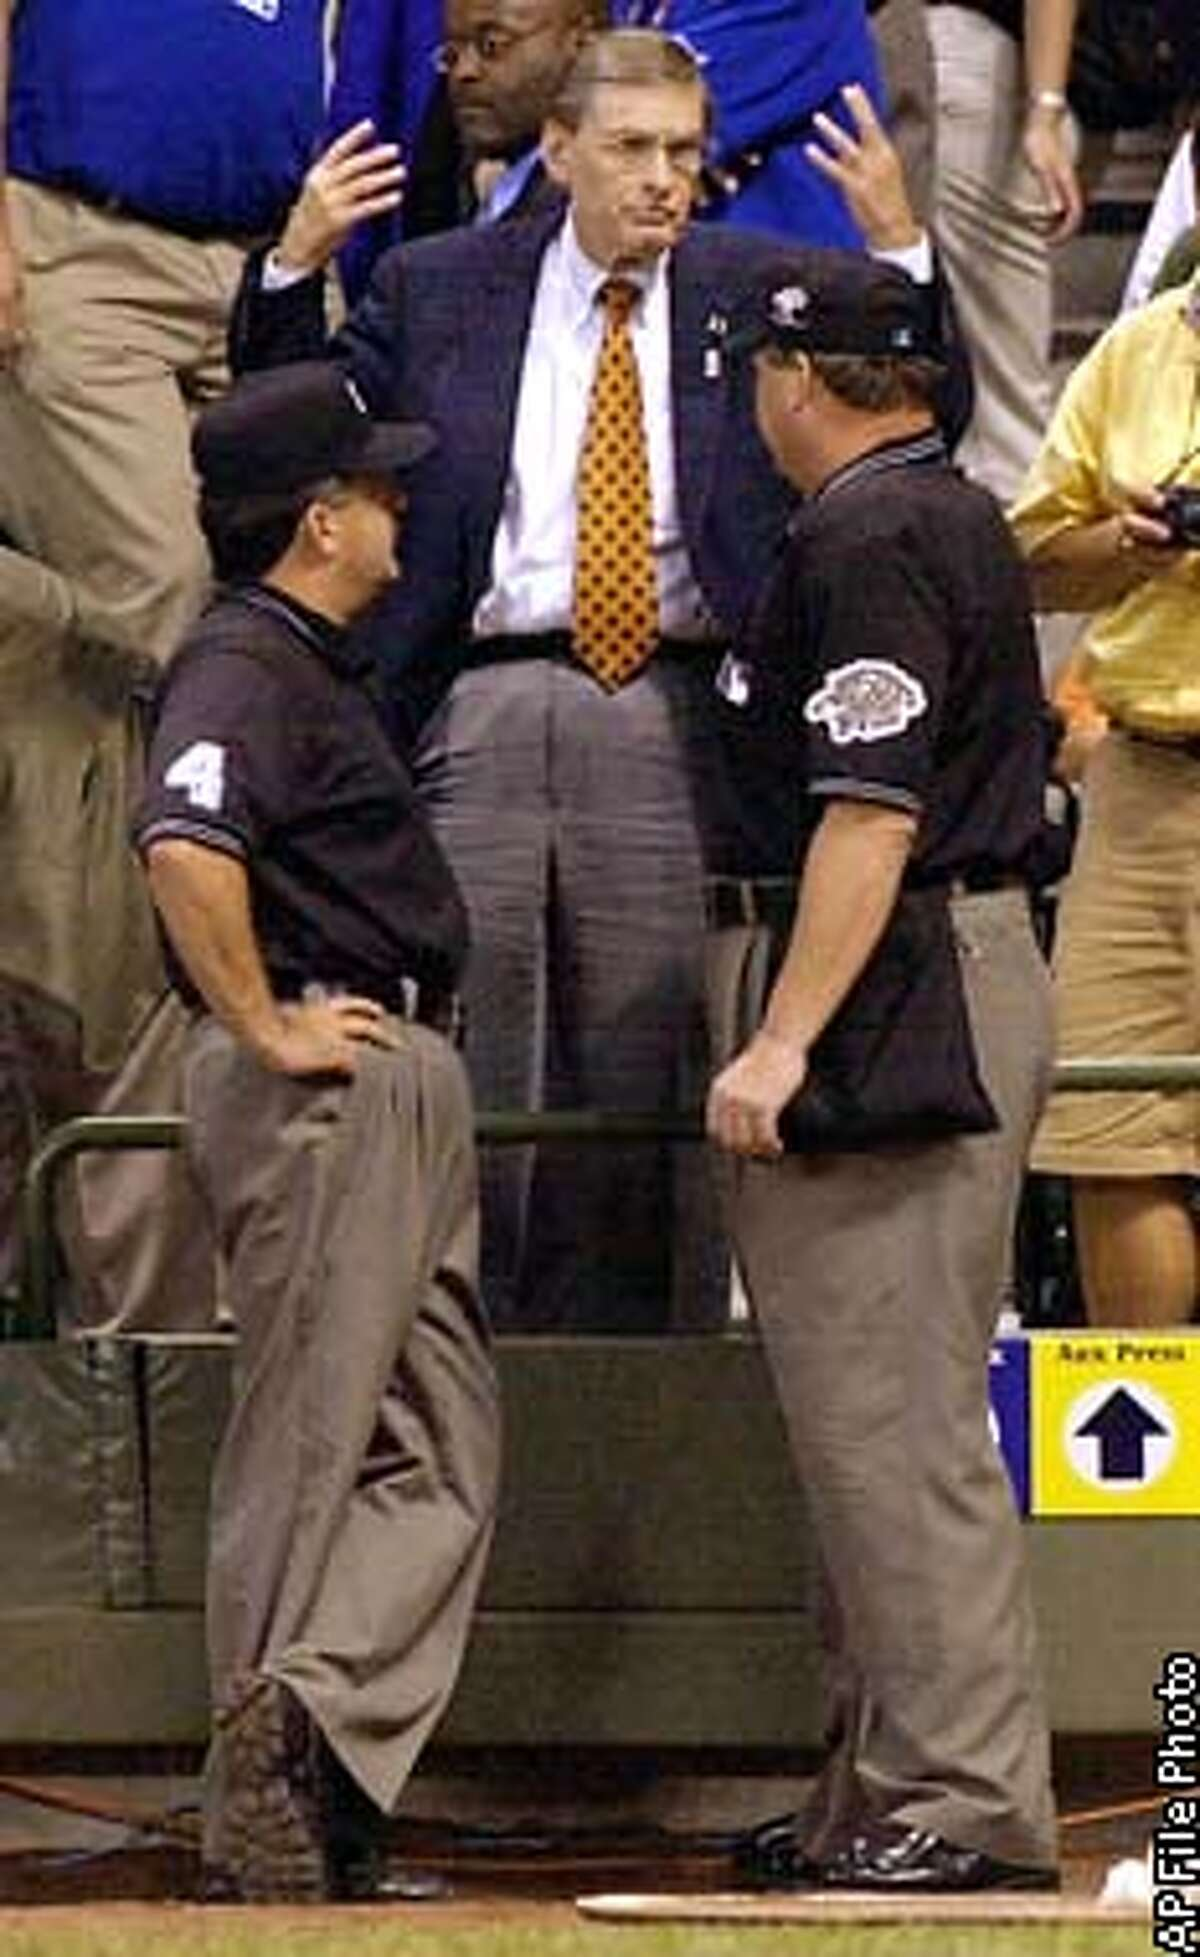 Baseball Commissioner Bud Selig throws up his arms while talking with the umpires in the 11th inning of the in Milwuakee, Tuesday, July 9, 2002. The game was call at the bottom of the inning with the score tied at 7-7. (AP Photo/Charlie Neibergall)